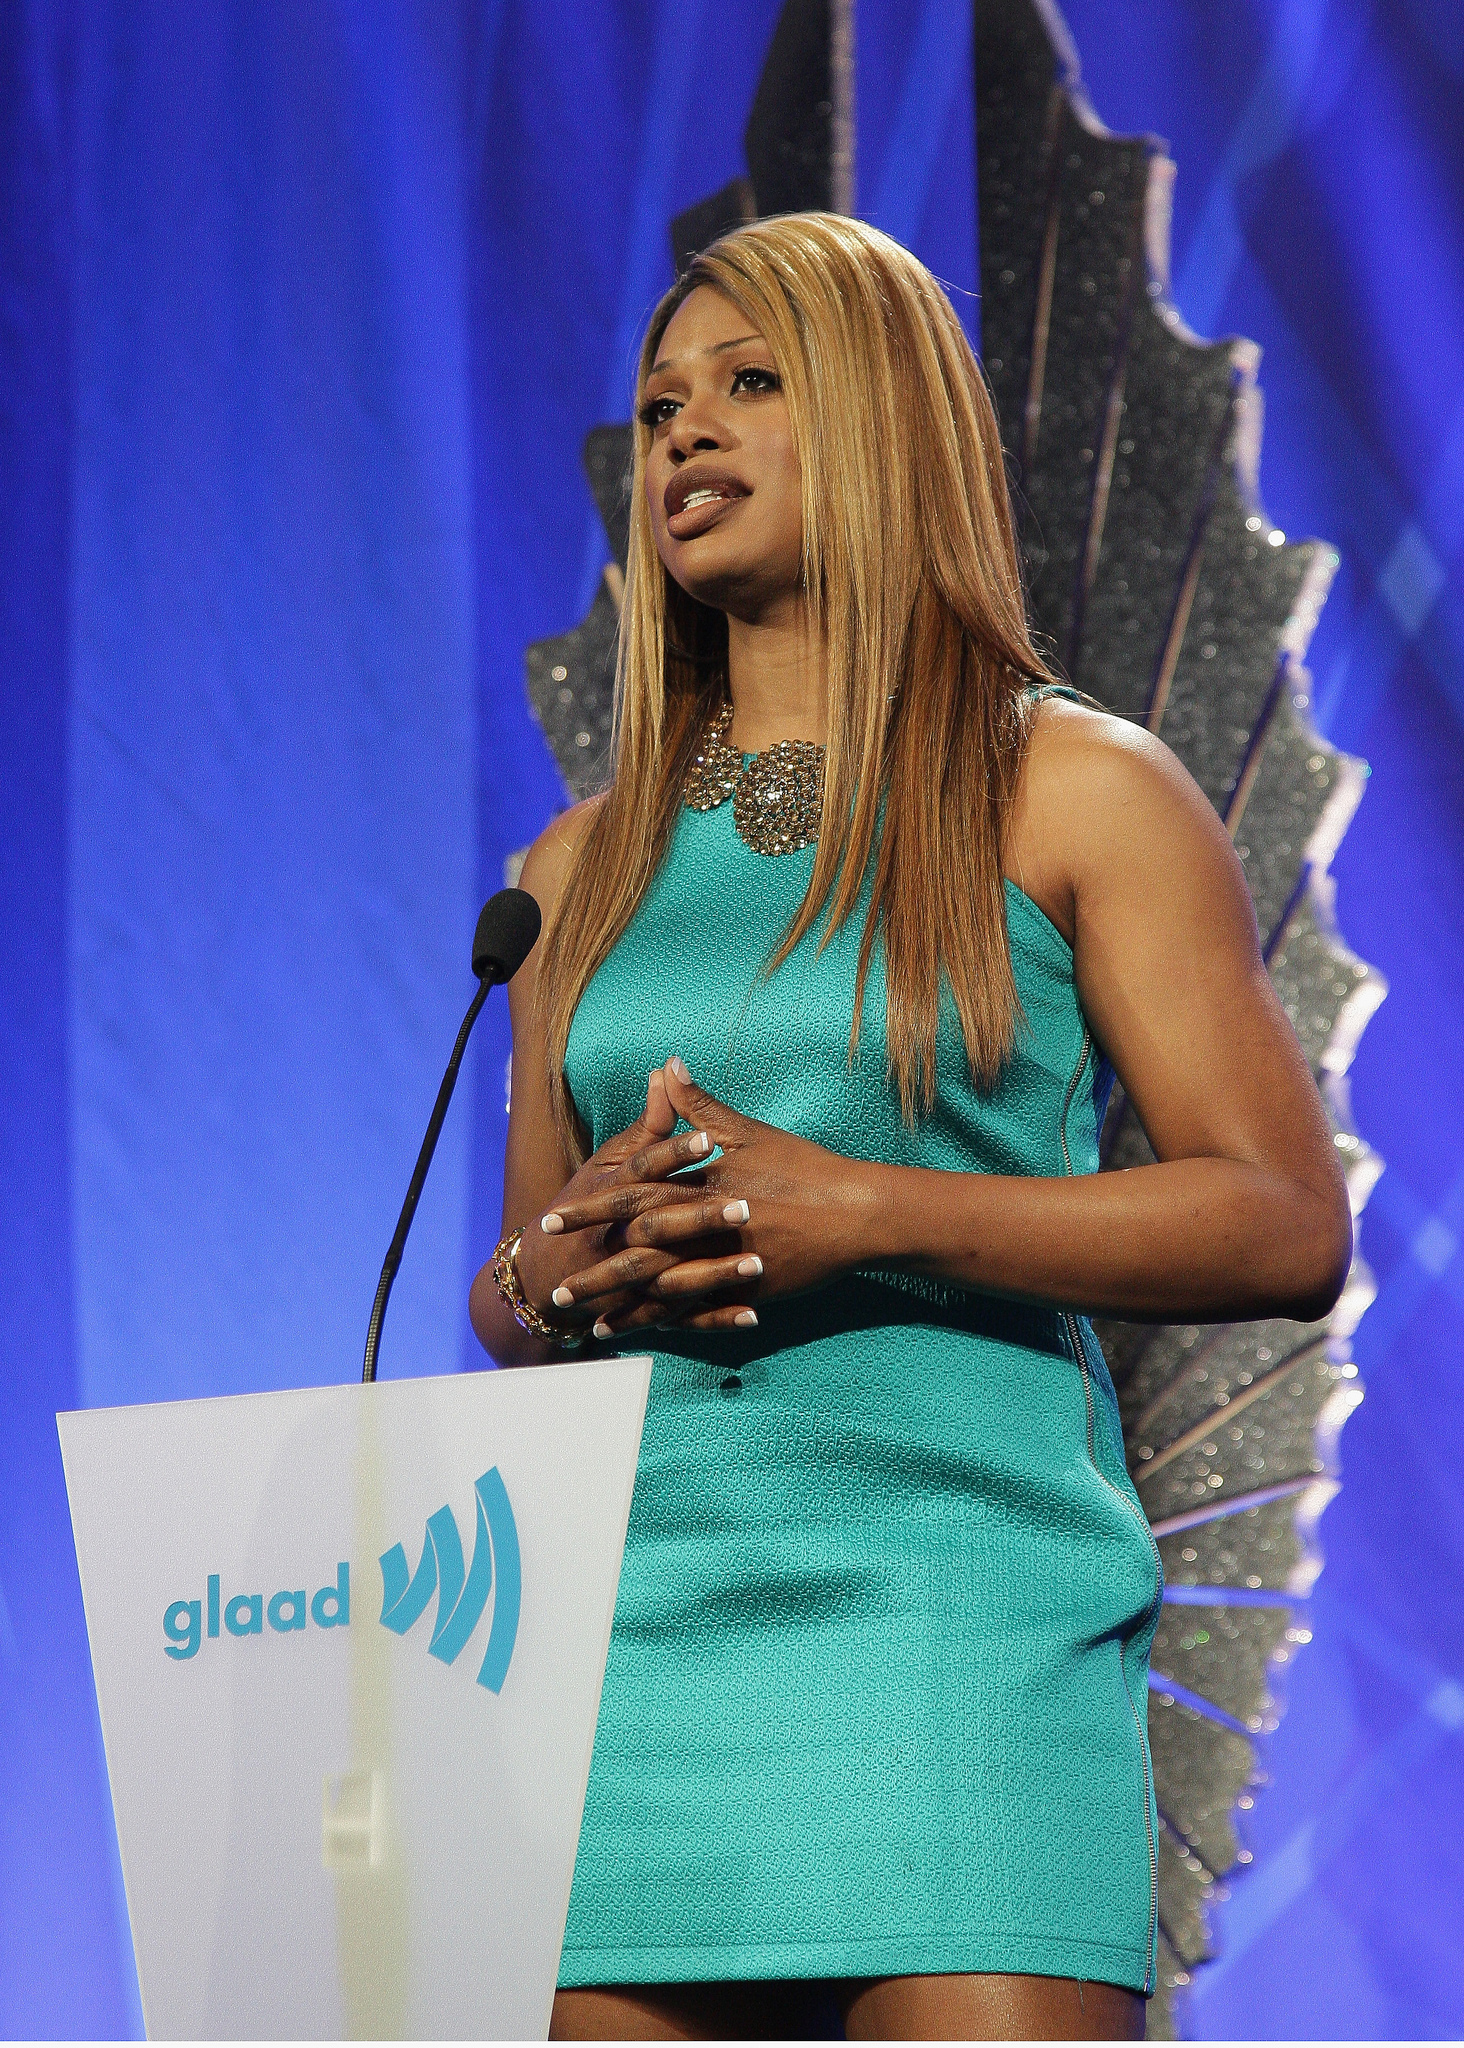 Laverne Cox addresses the attendees the 24th Annual GLAAD Media Awards - Photo by John Medina/WireImage